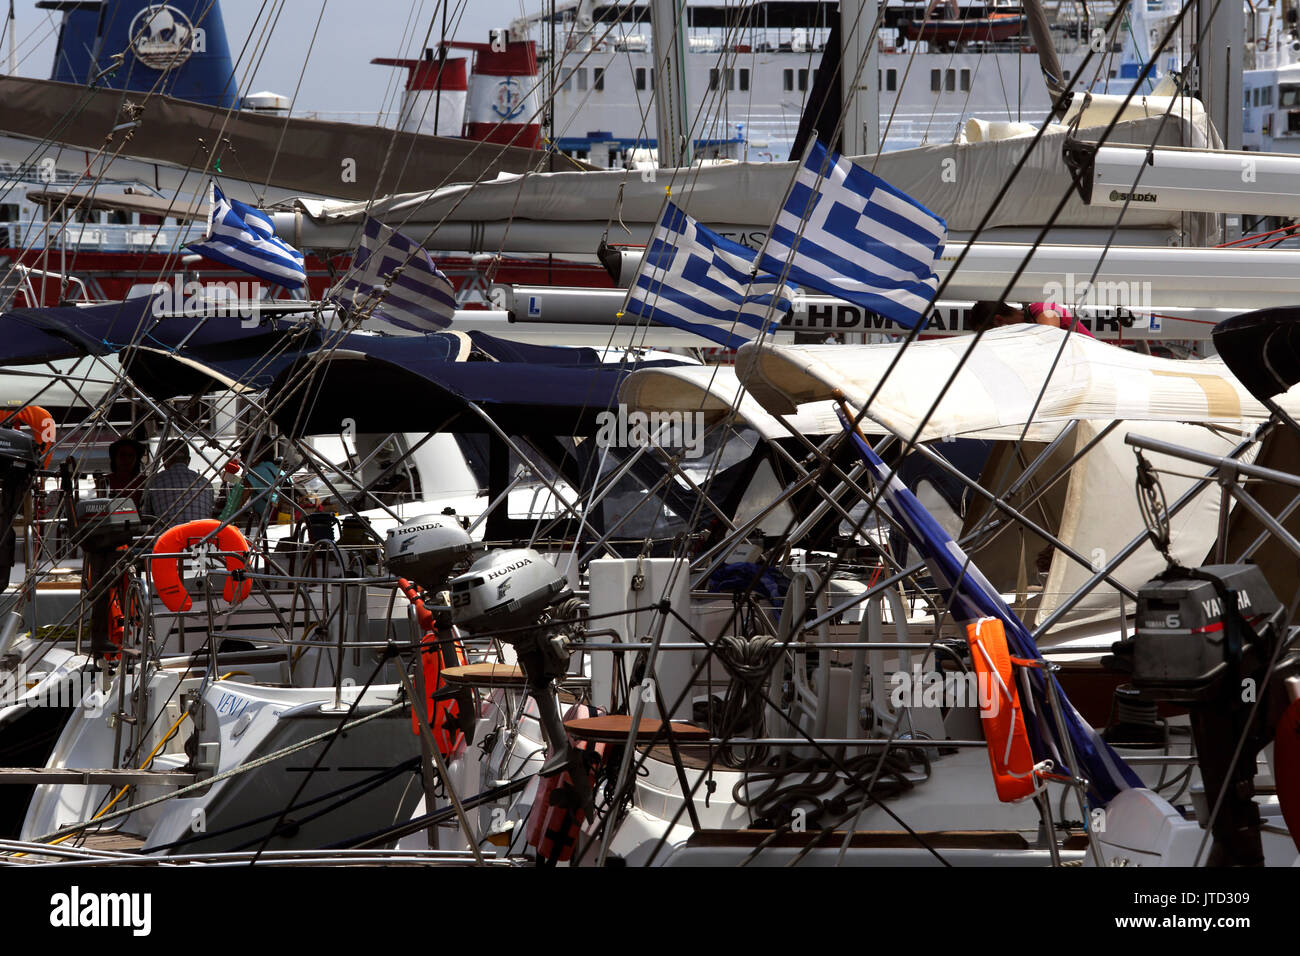 Lavrio Port Attica Greece Yachts with Greek Flags - Stock Image